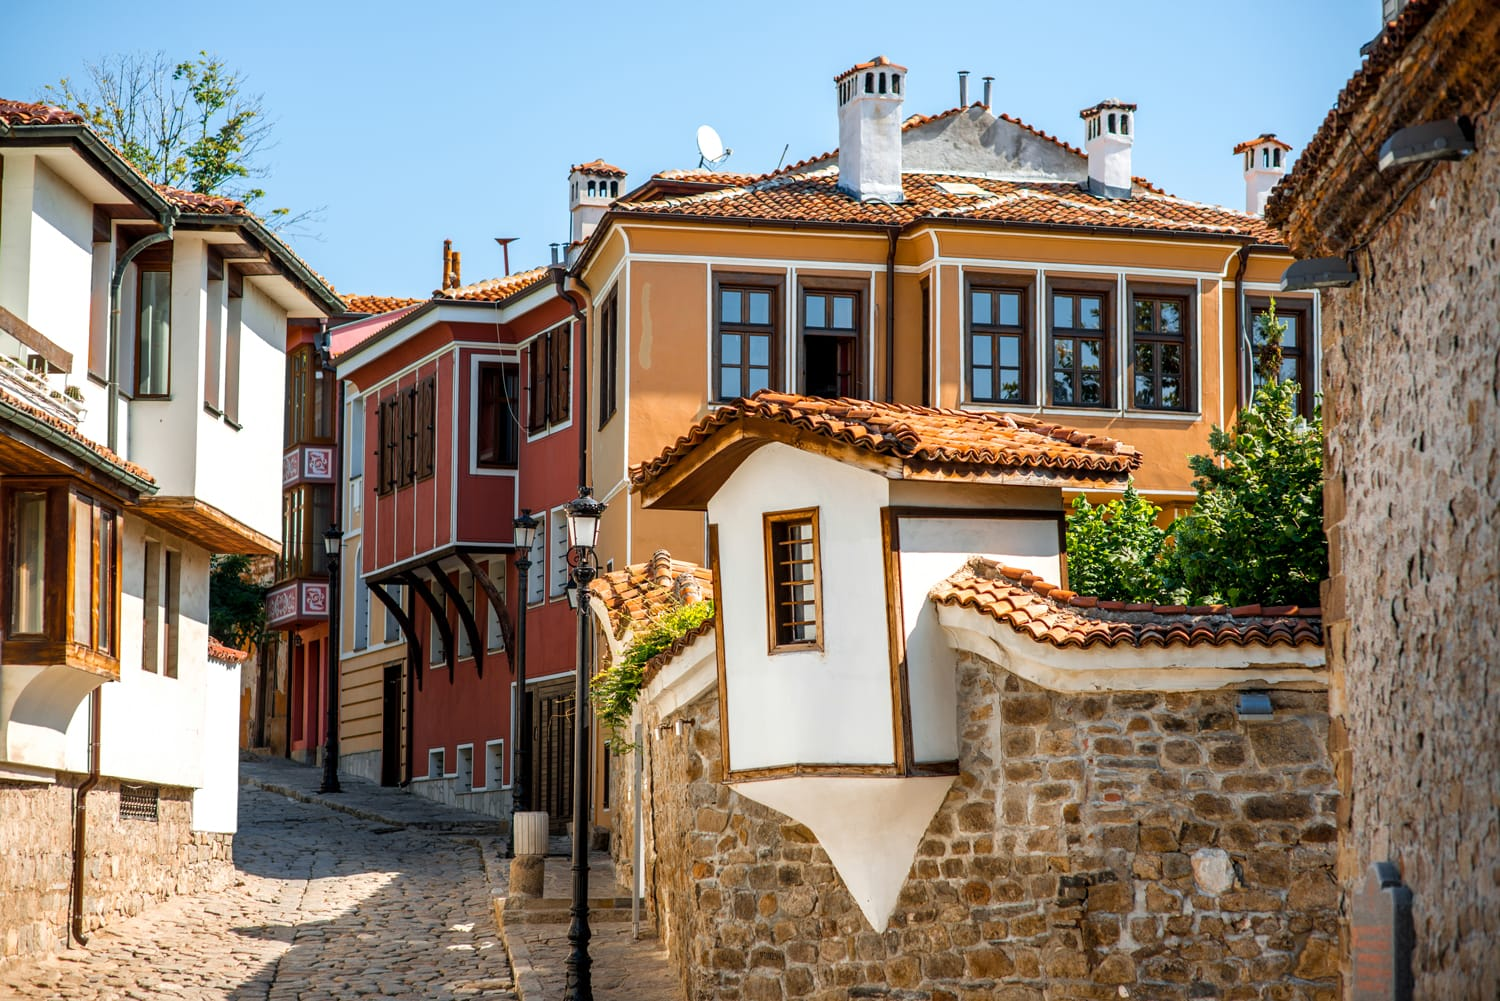 Old city street view with colorful buildings in Plovdiv, Bulgaria